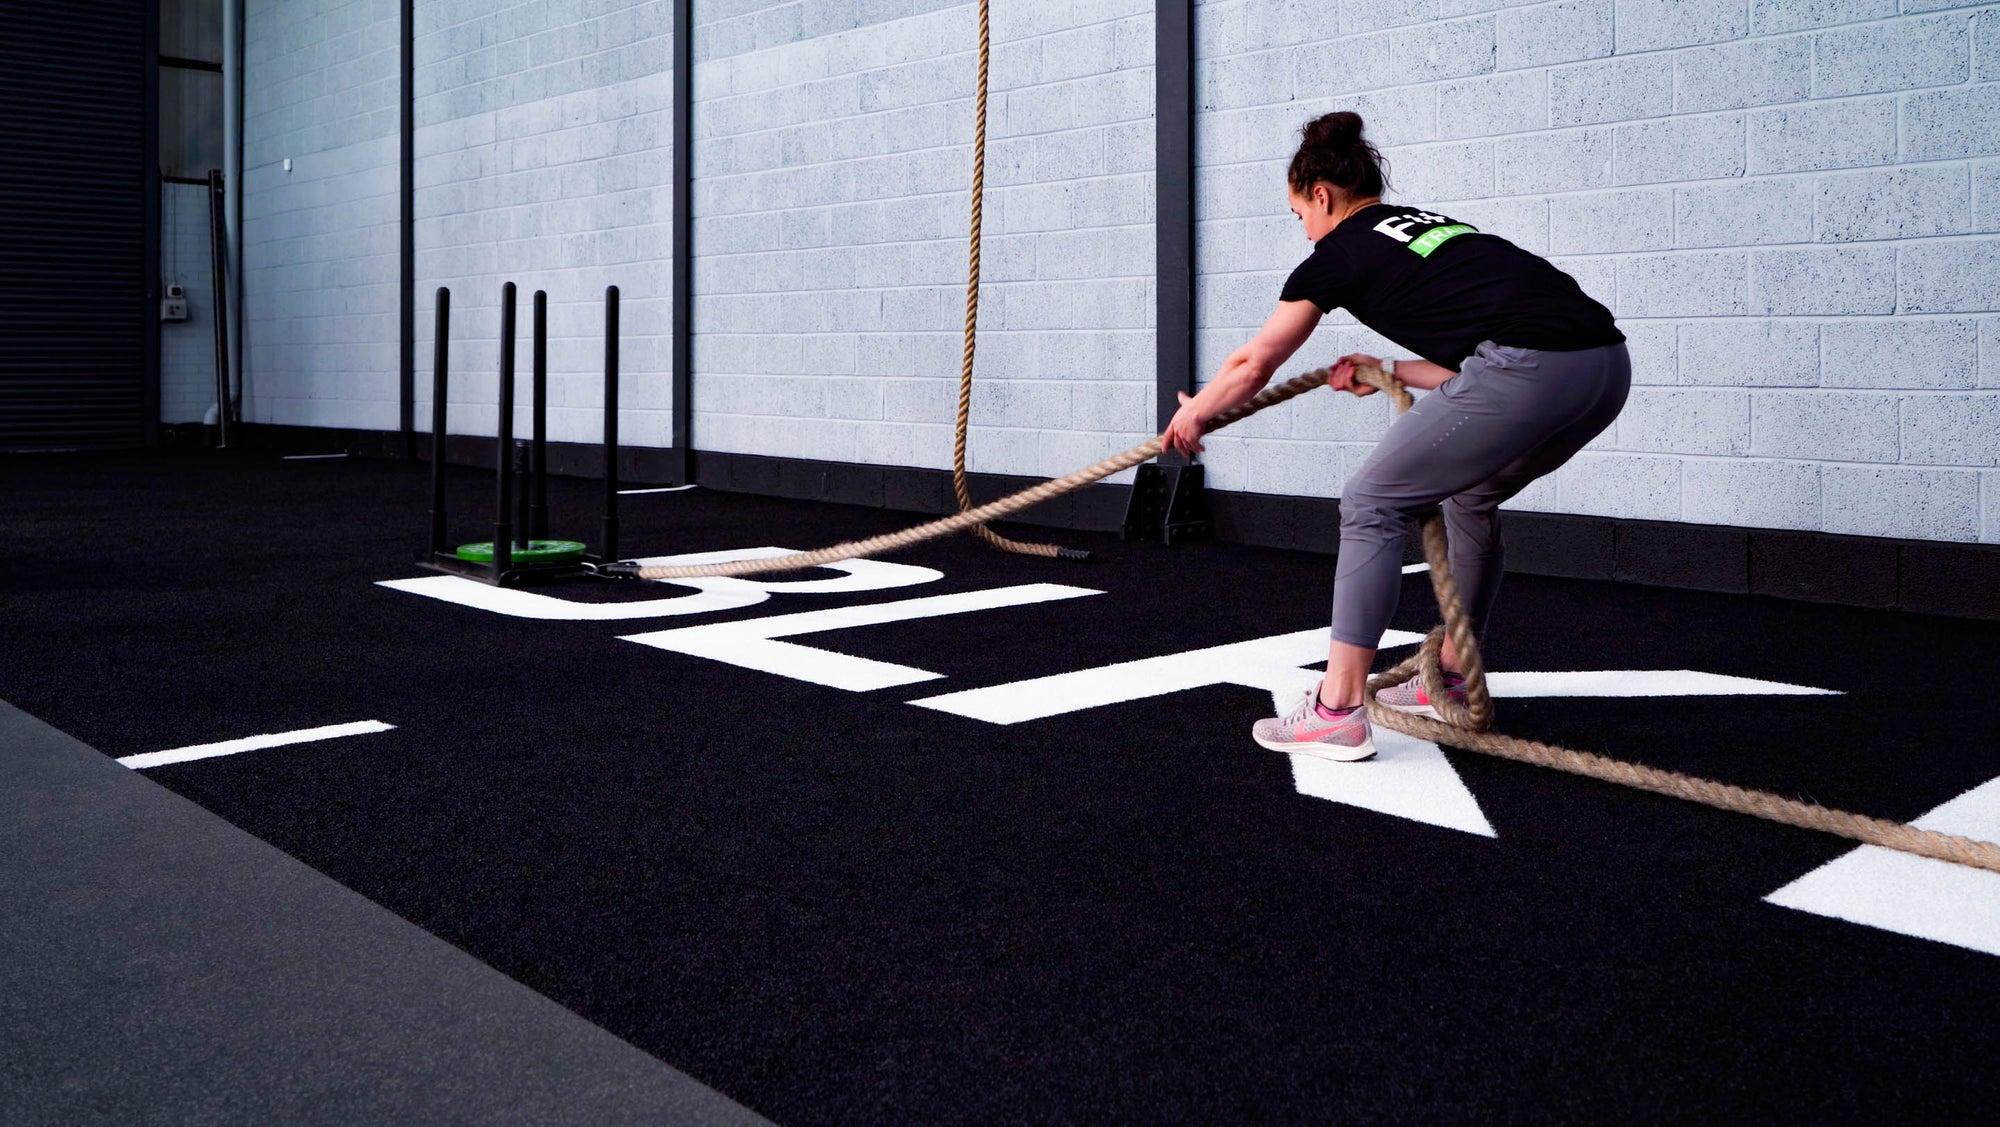 BLK BOX Teams Up With Fitr Training